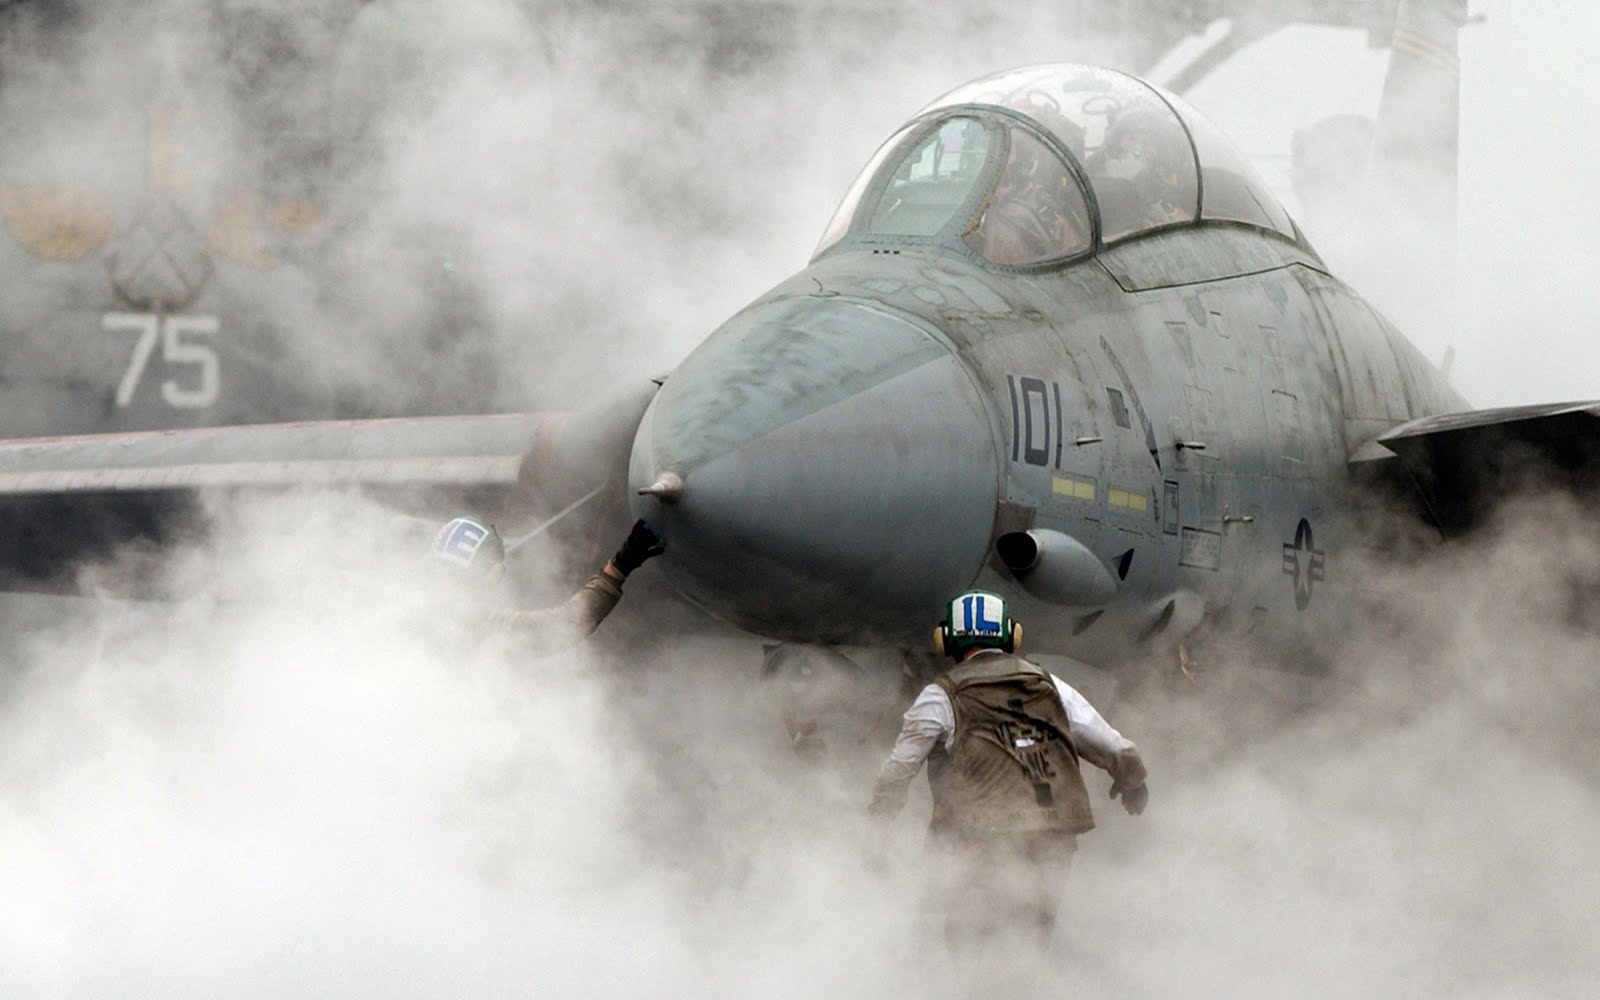 Most Inspiring Wallpaper High Resolution Fighter Jet - High+resolution+military+aircraft+wallpaper+4  Pictures_913081.jpg